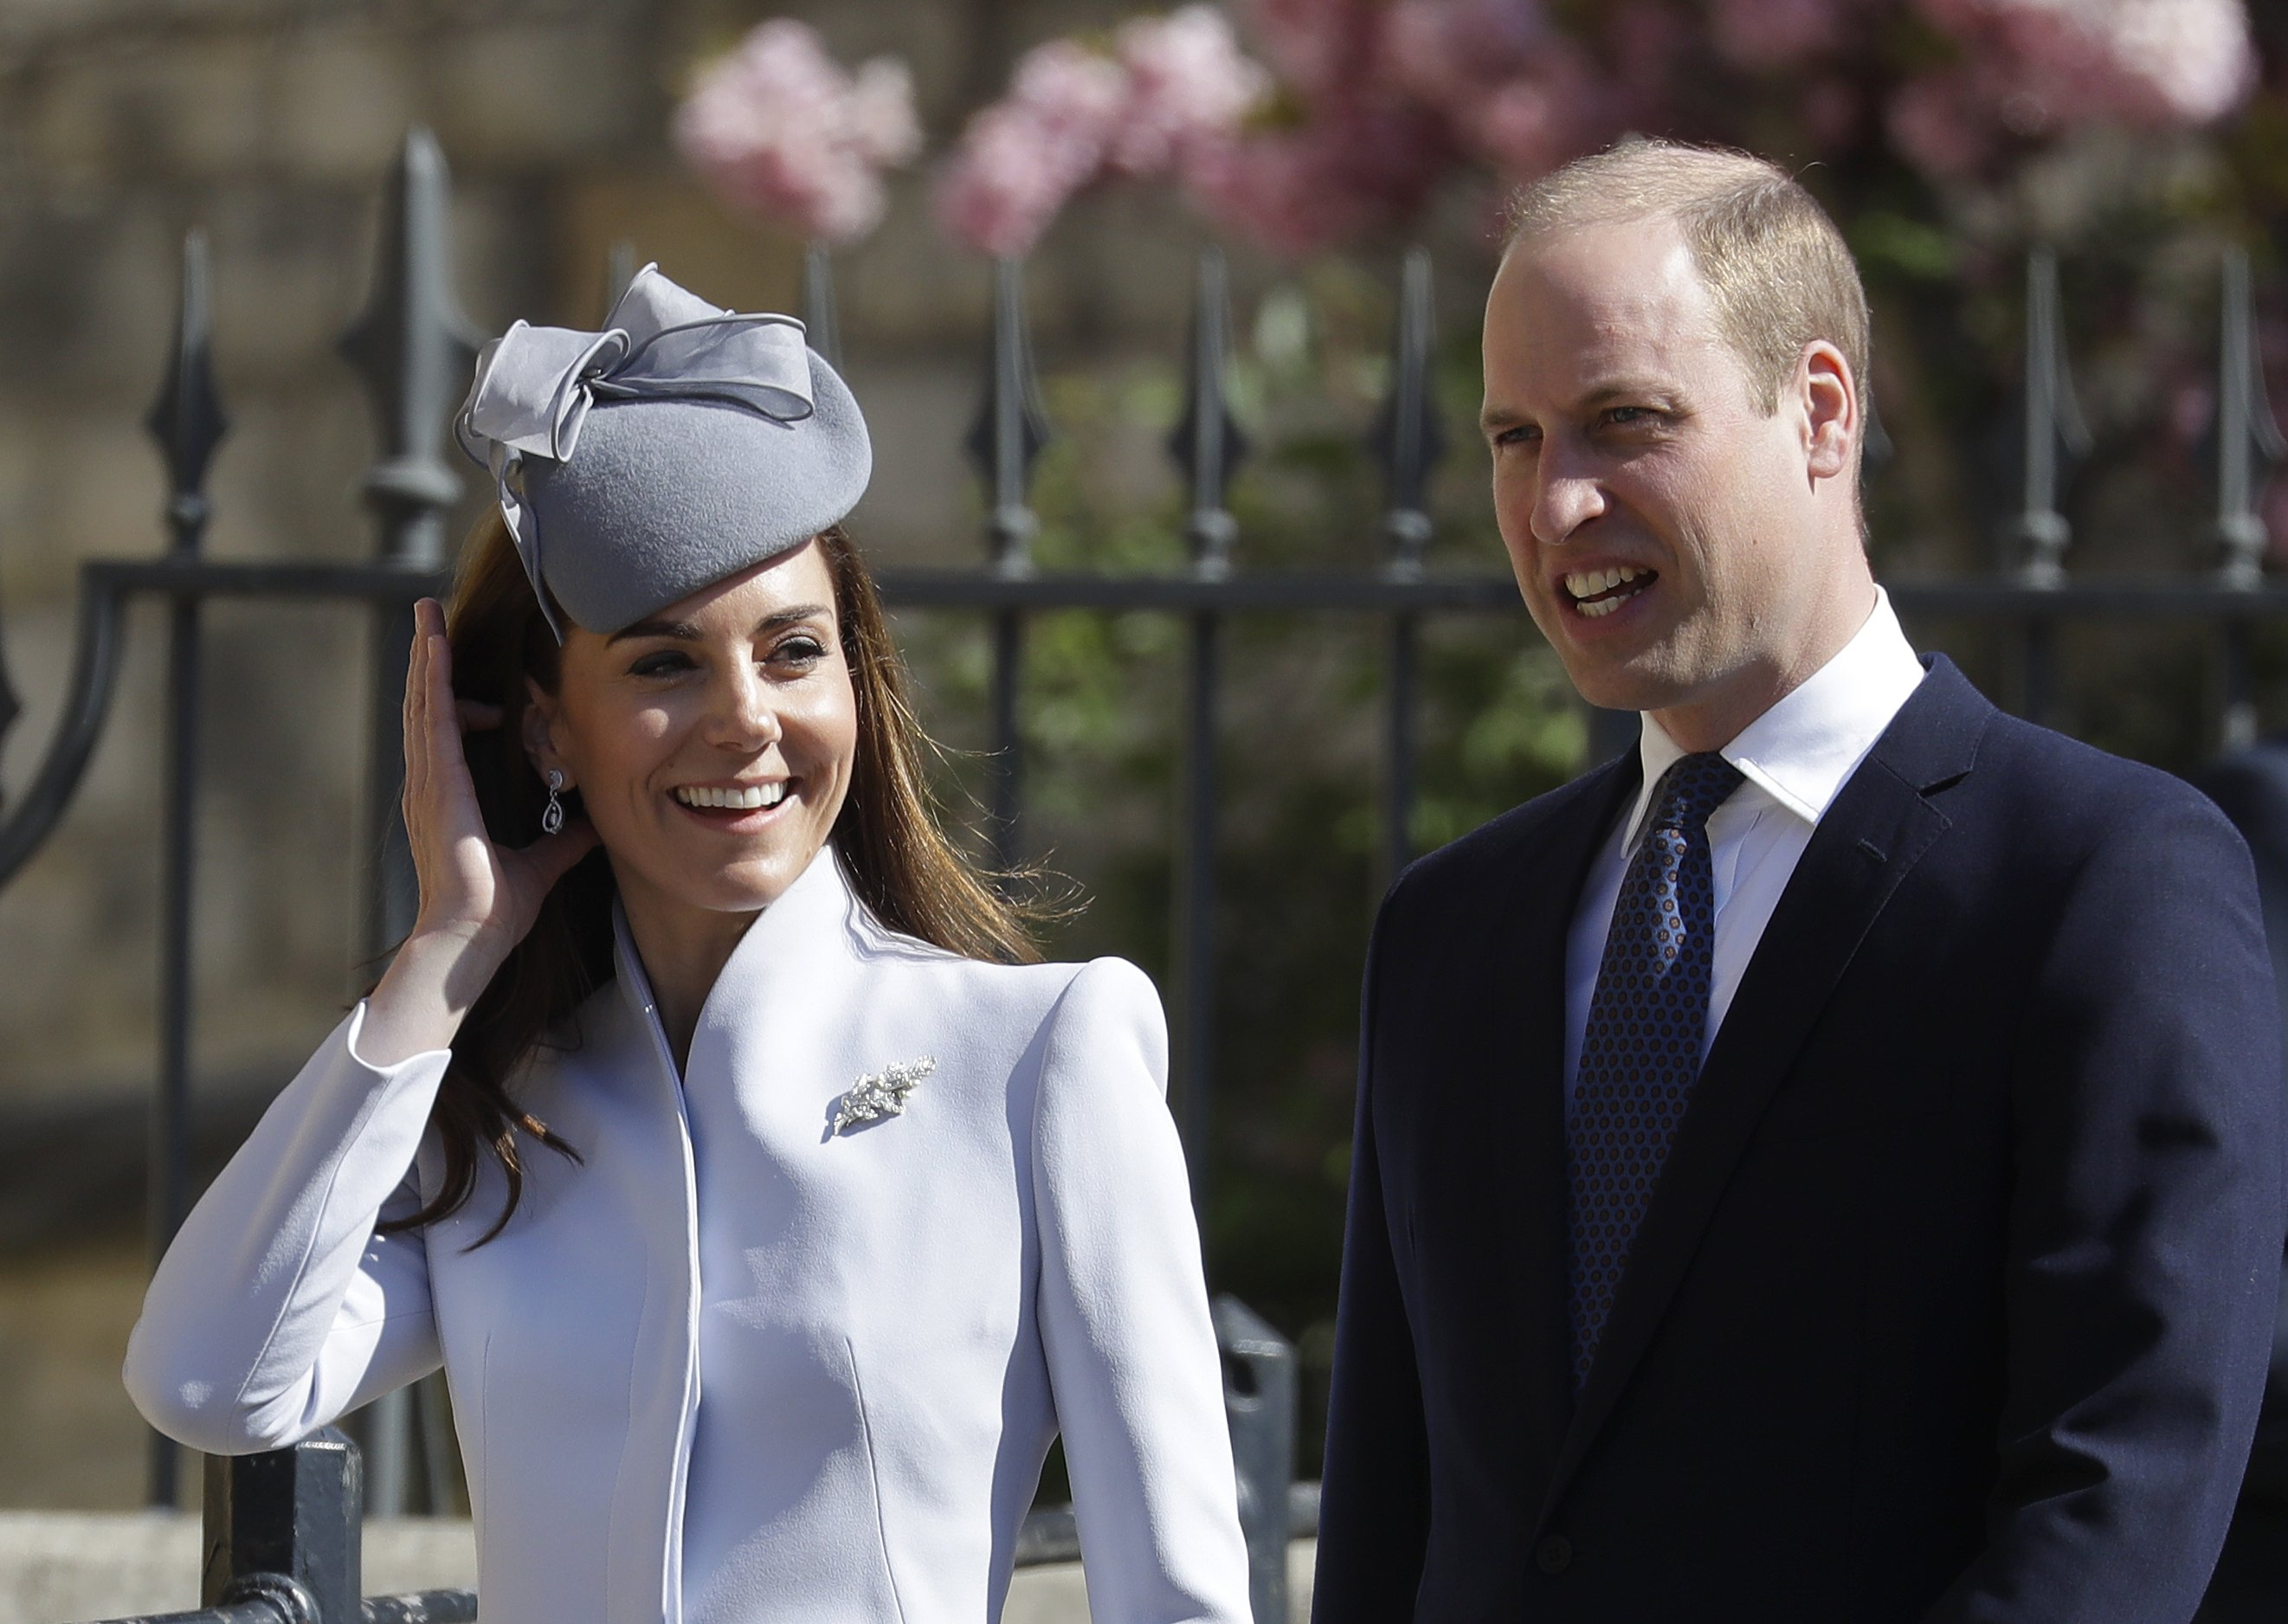 Le prince William et Kate Middleton au service du dimanche de Pâques à la chapelle St George's | Photo : Getty Images